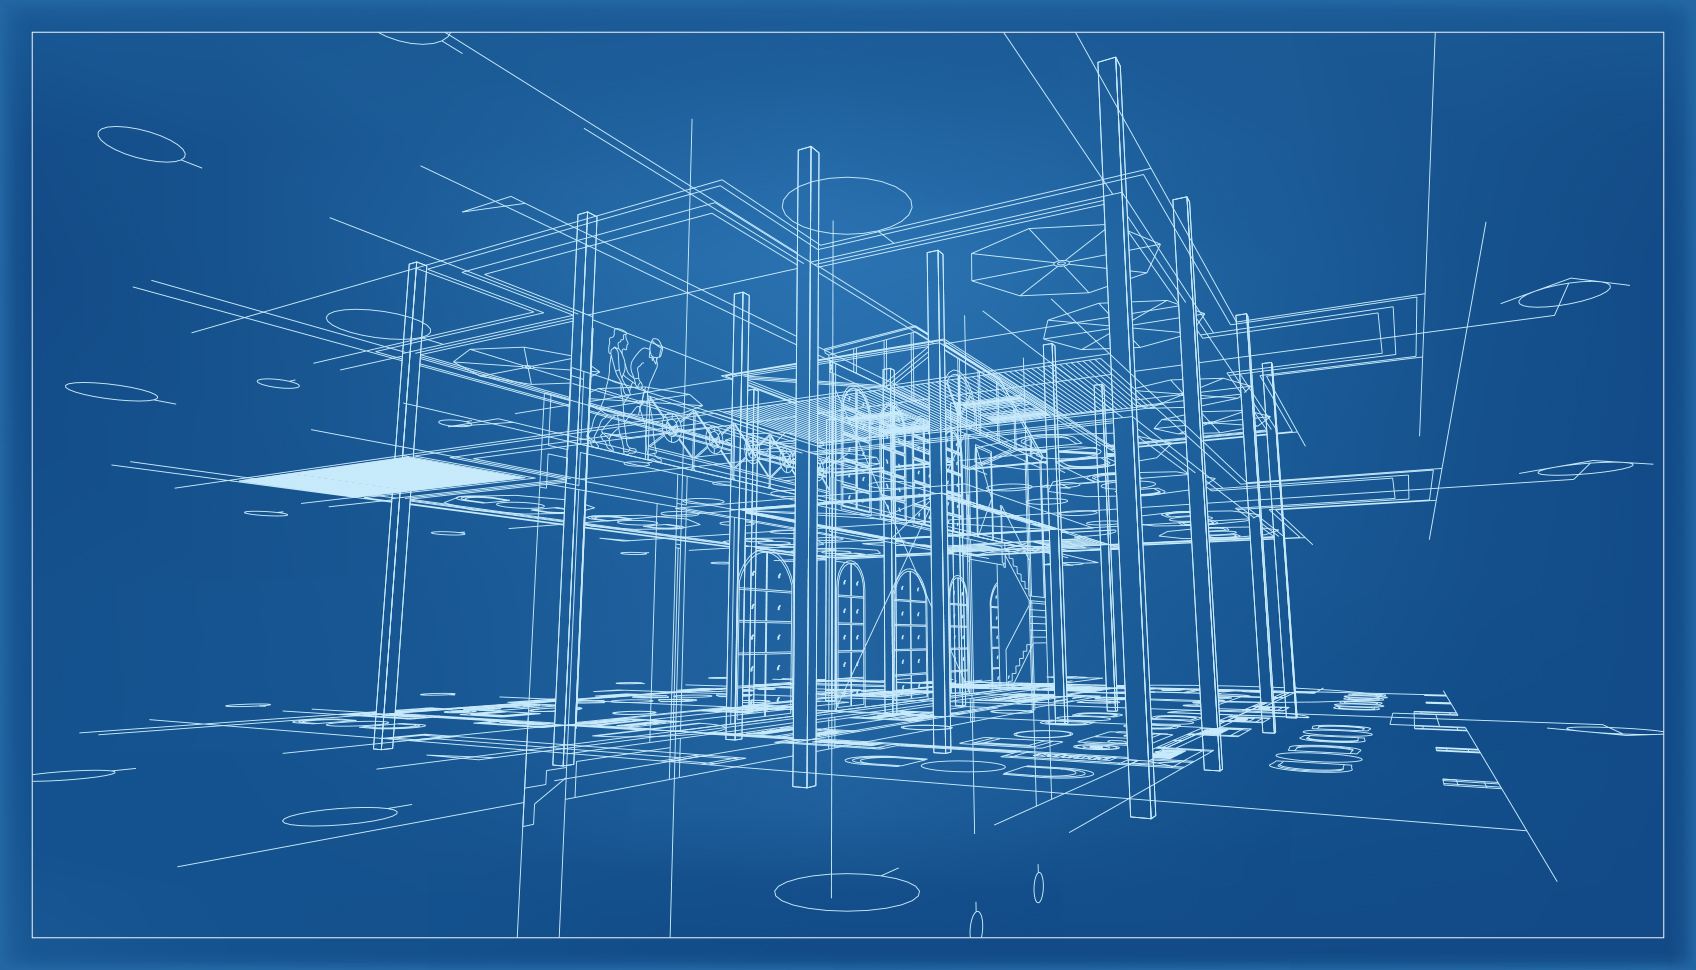 Blue prints house plans sorell consulting ltd for Blueprint for houses free